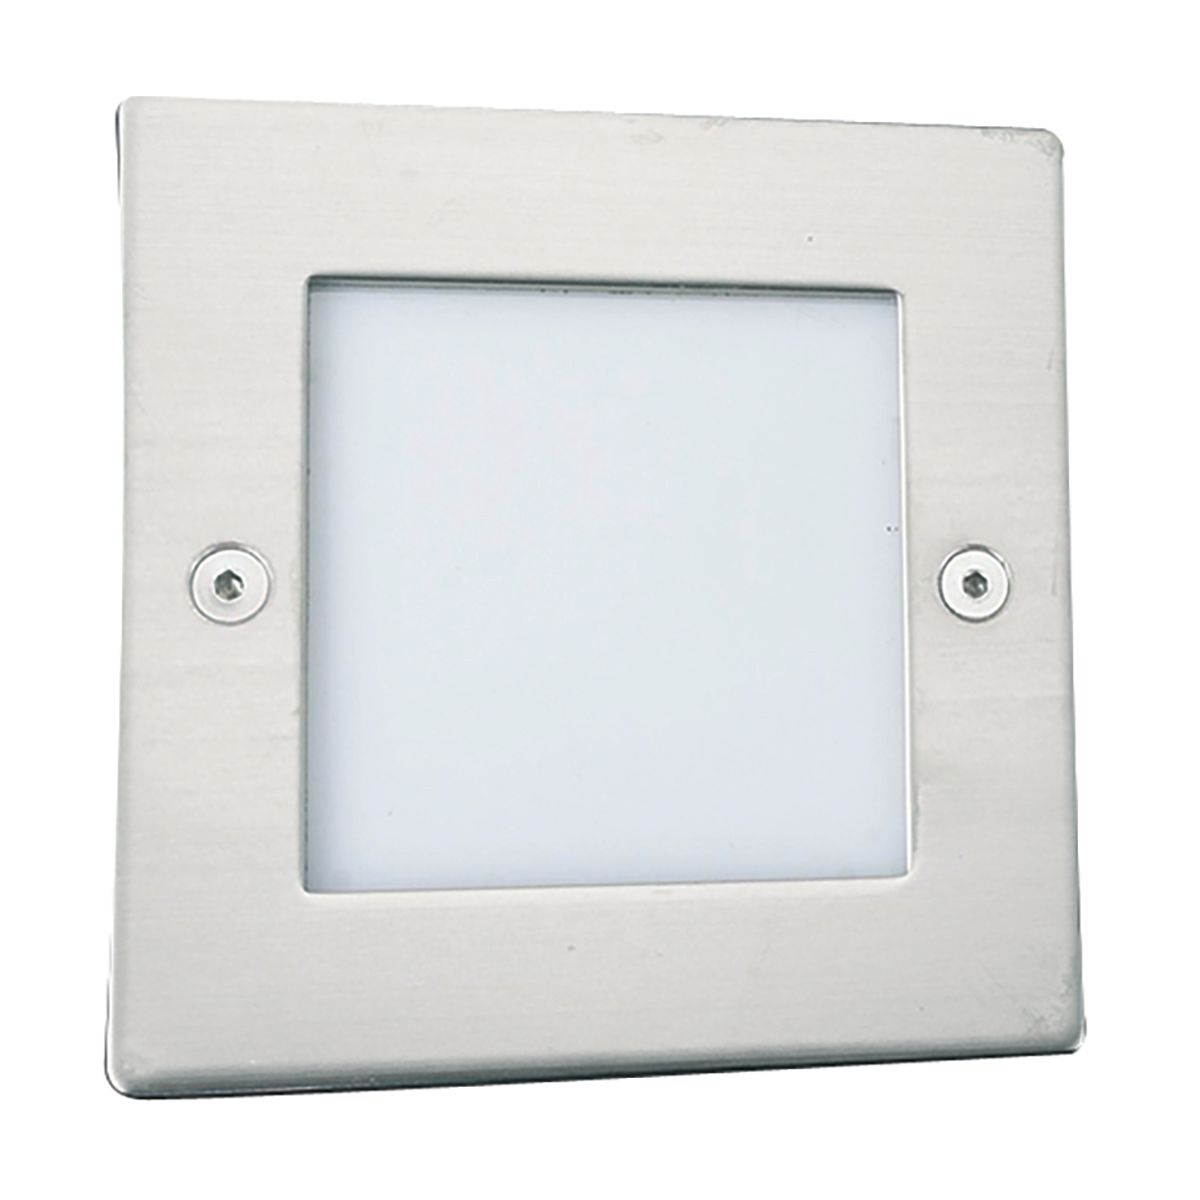 Stainless Steel 9 Led Square Recessed Light With Translucent Diffuser